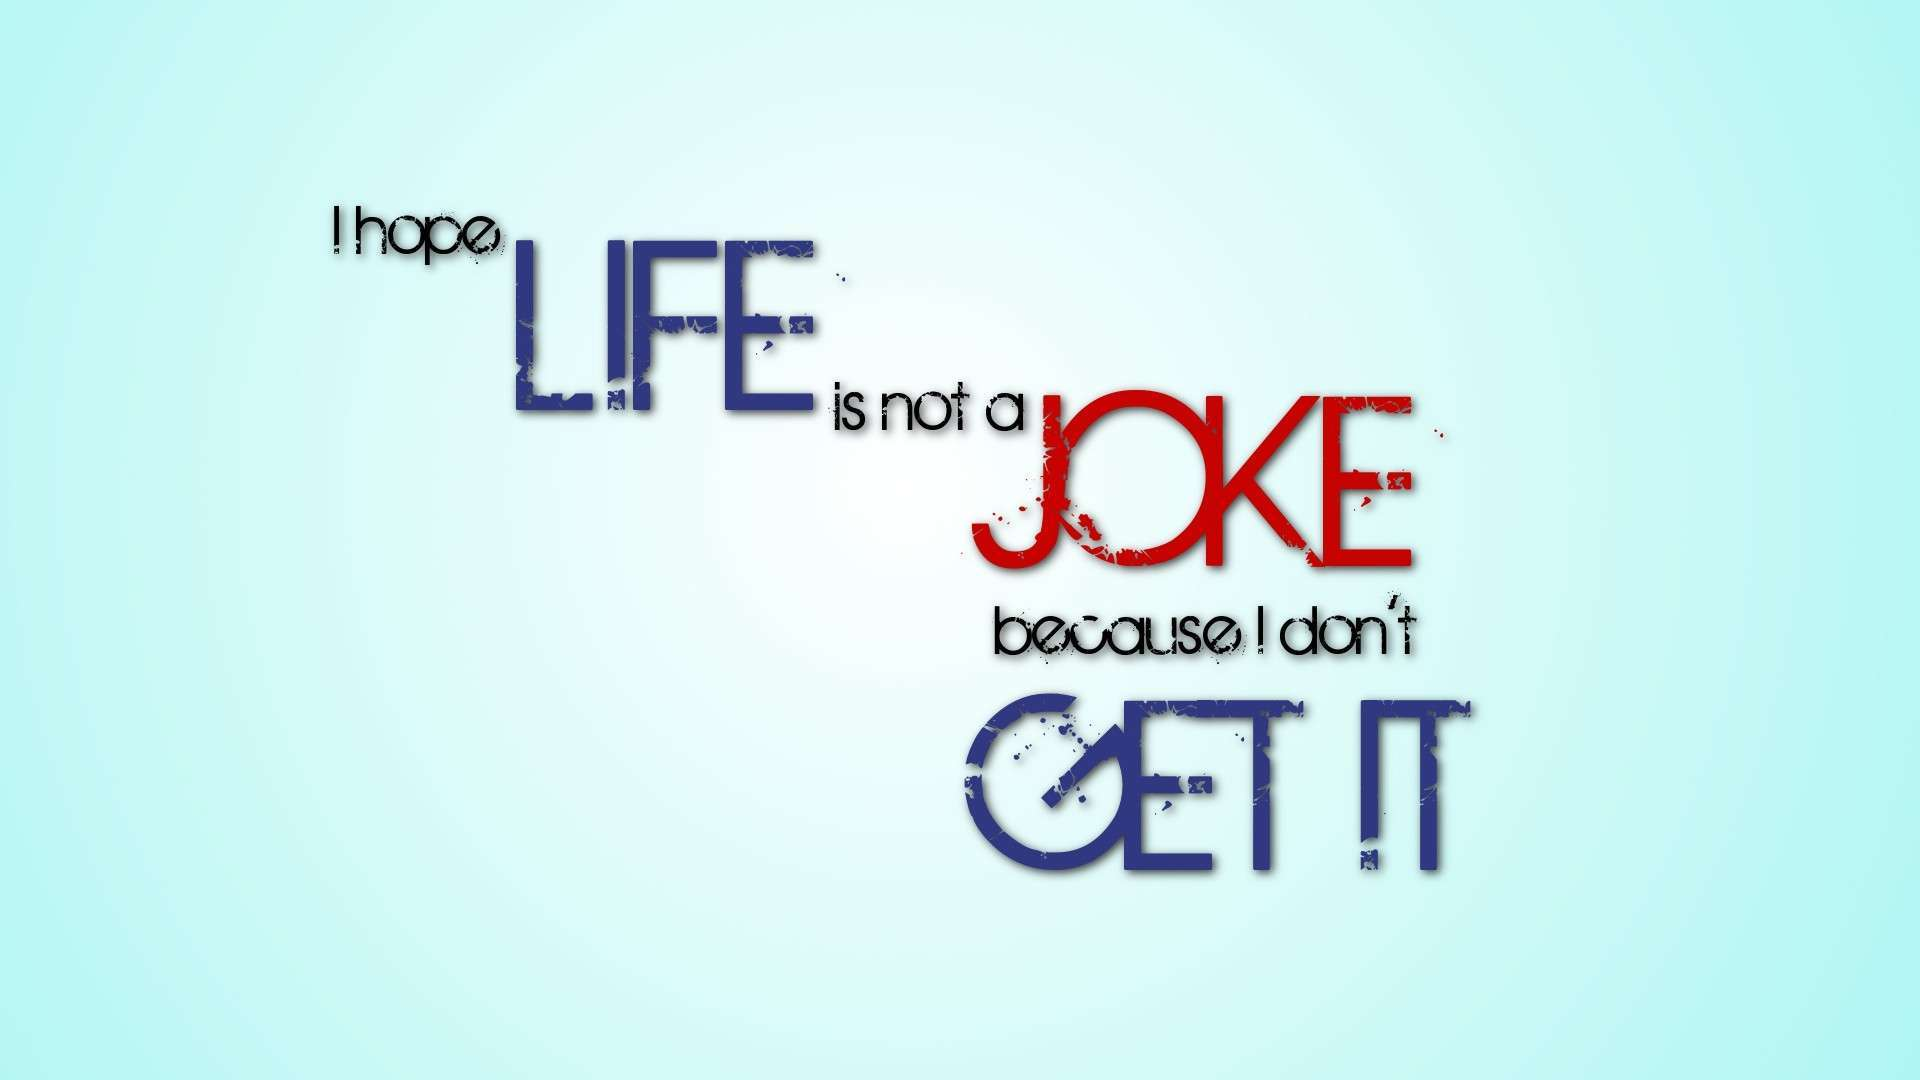 Wallpaper download jokes - Life Is Not A Joke Hd Wallpaper Fullhdwpp Full Hd Wallpapers